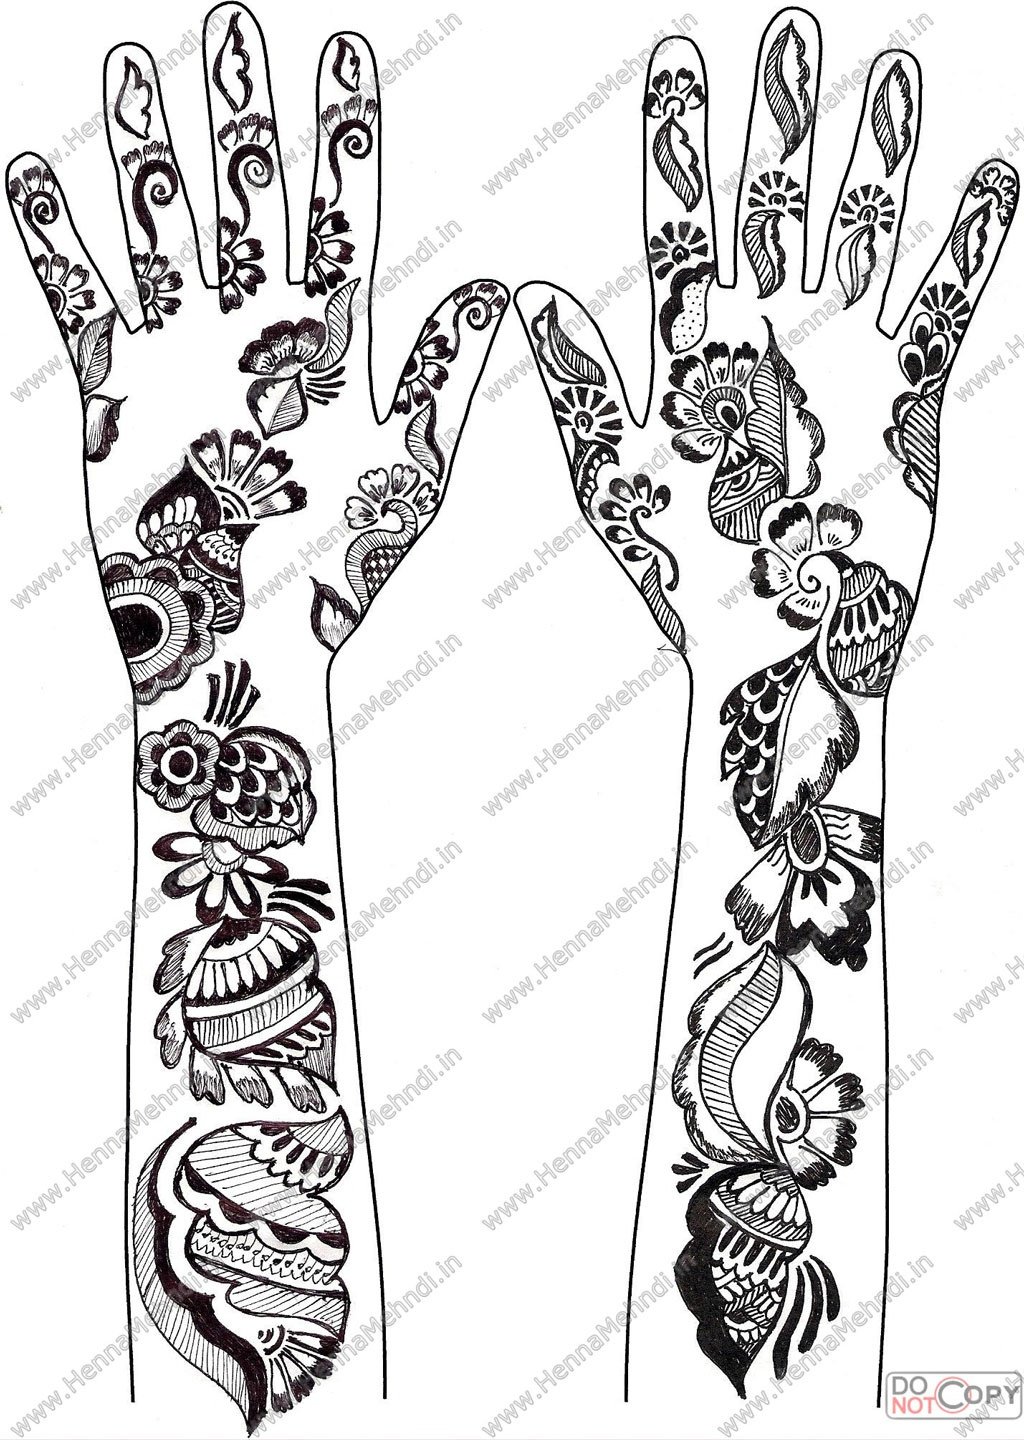 Grey Ink Henna Tattoos Designs For Both Arm - Free Printable Henna Tattoo Designs